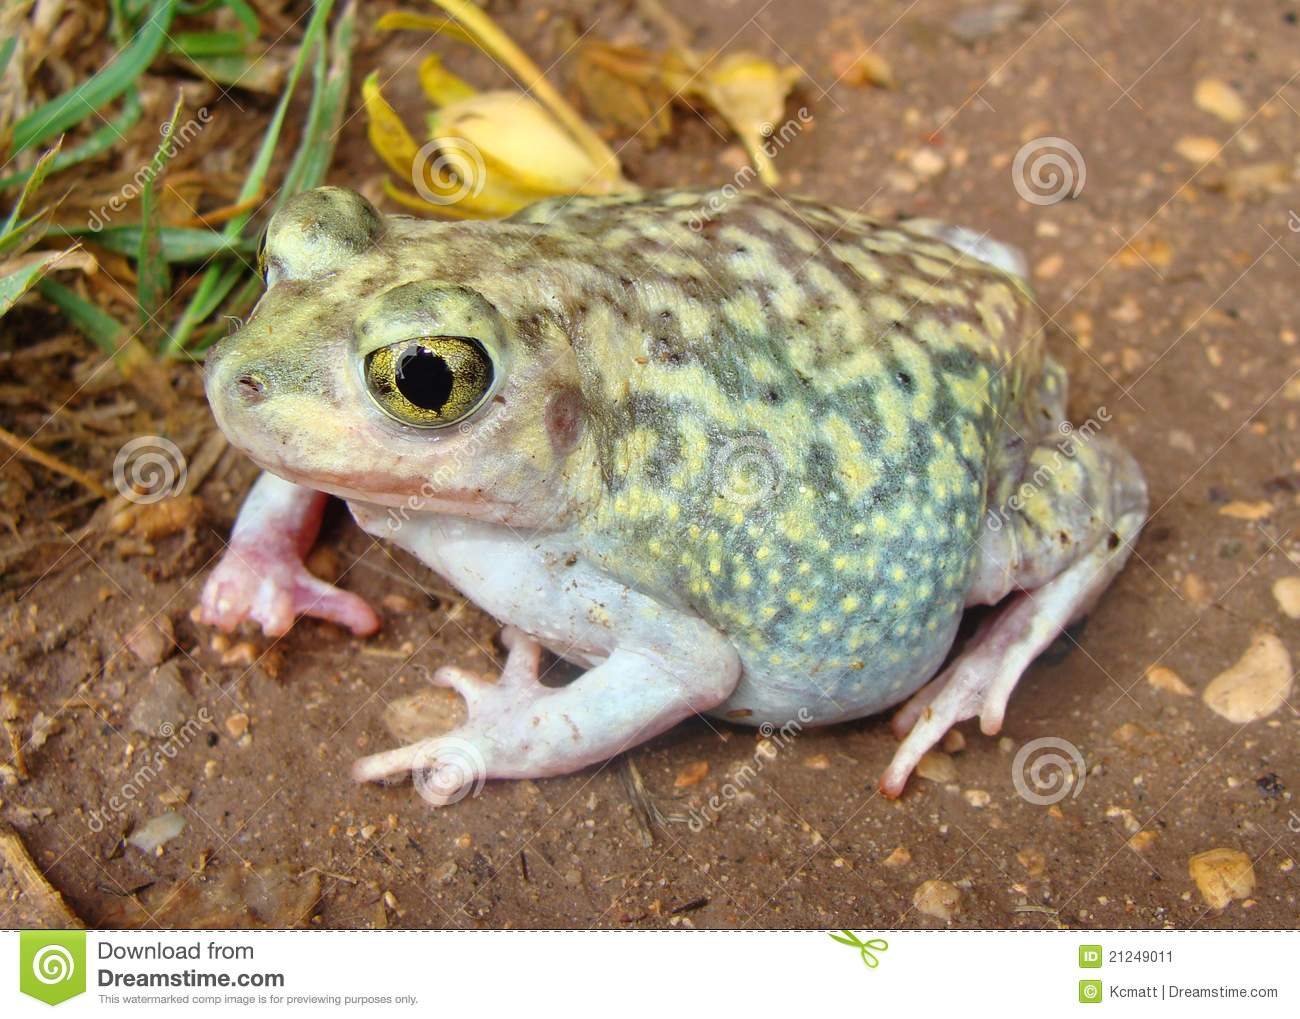 A gravid, or pregnant toad, the Spadefoot Toad